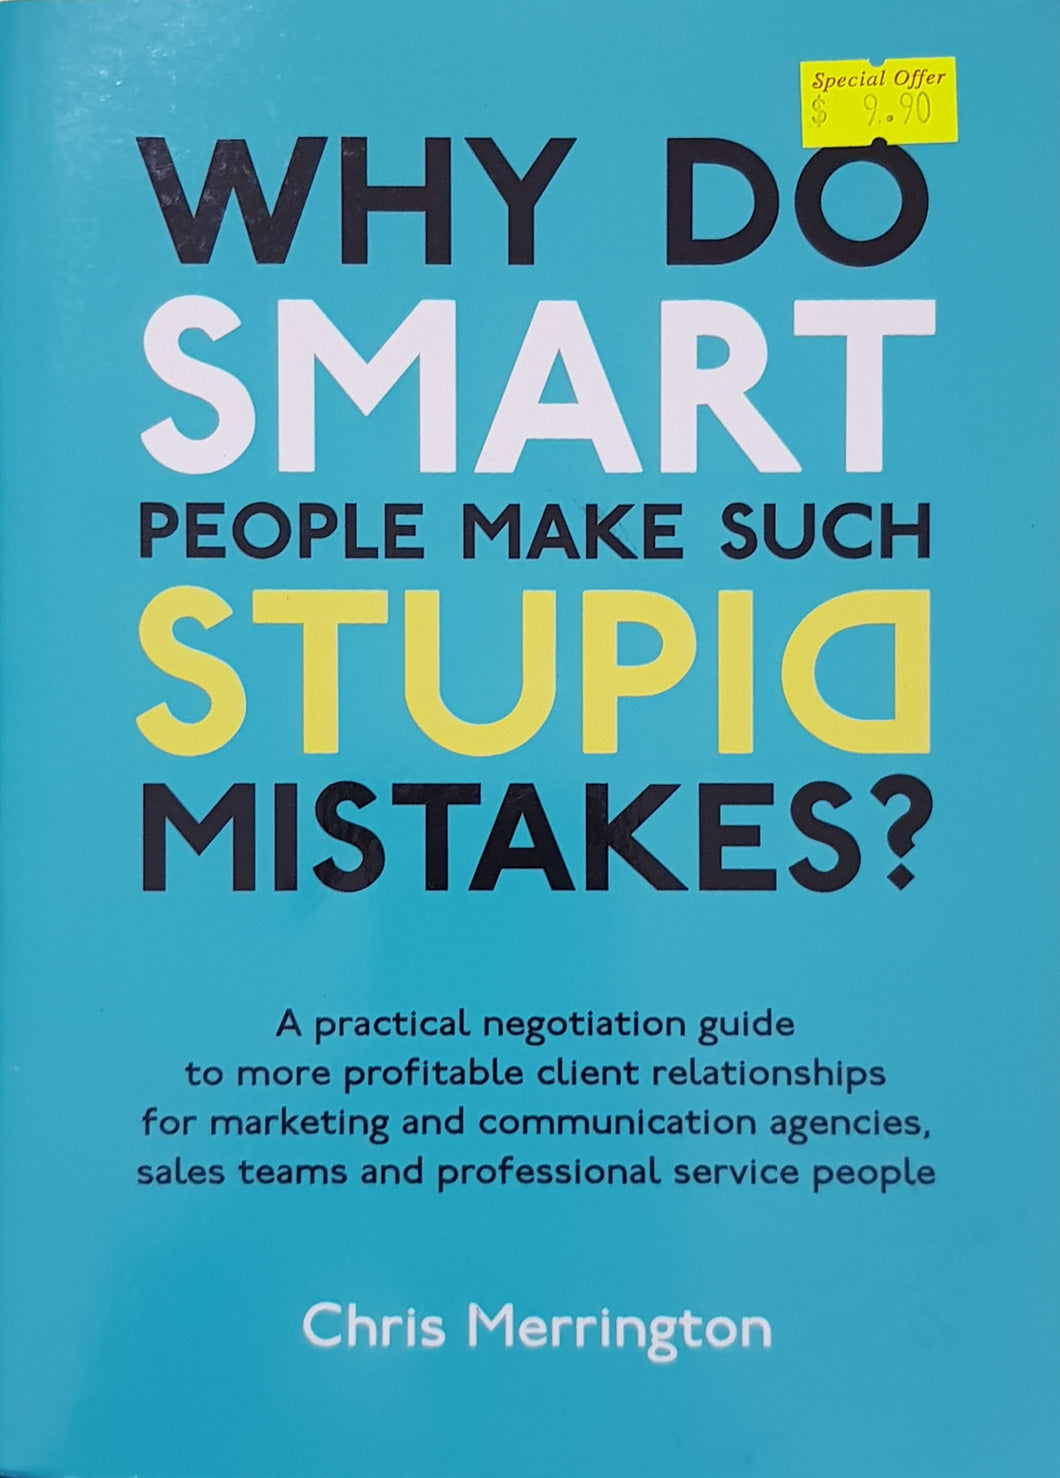 Why Do Smart People Make Such Stupid Mistakes? - Chris Merrington